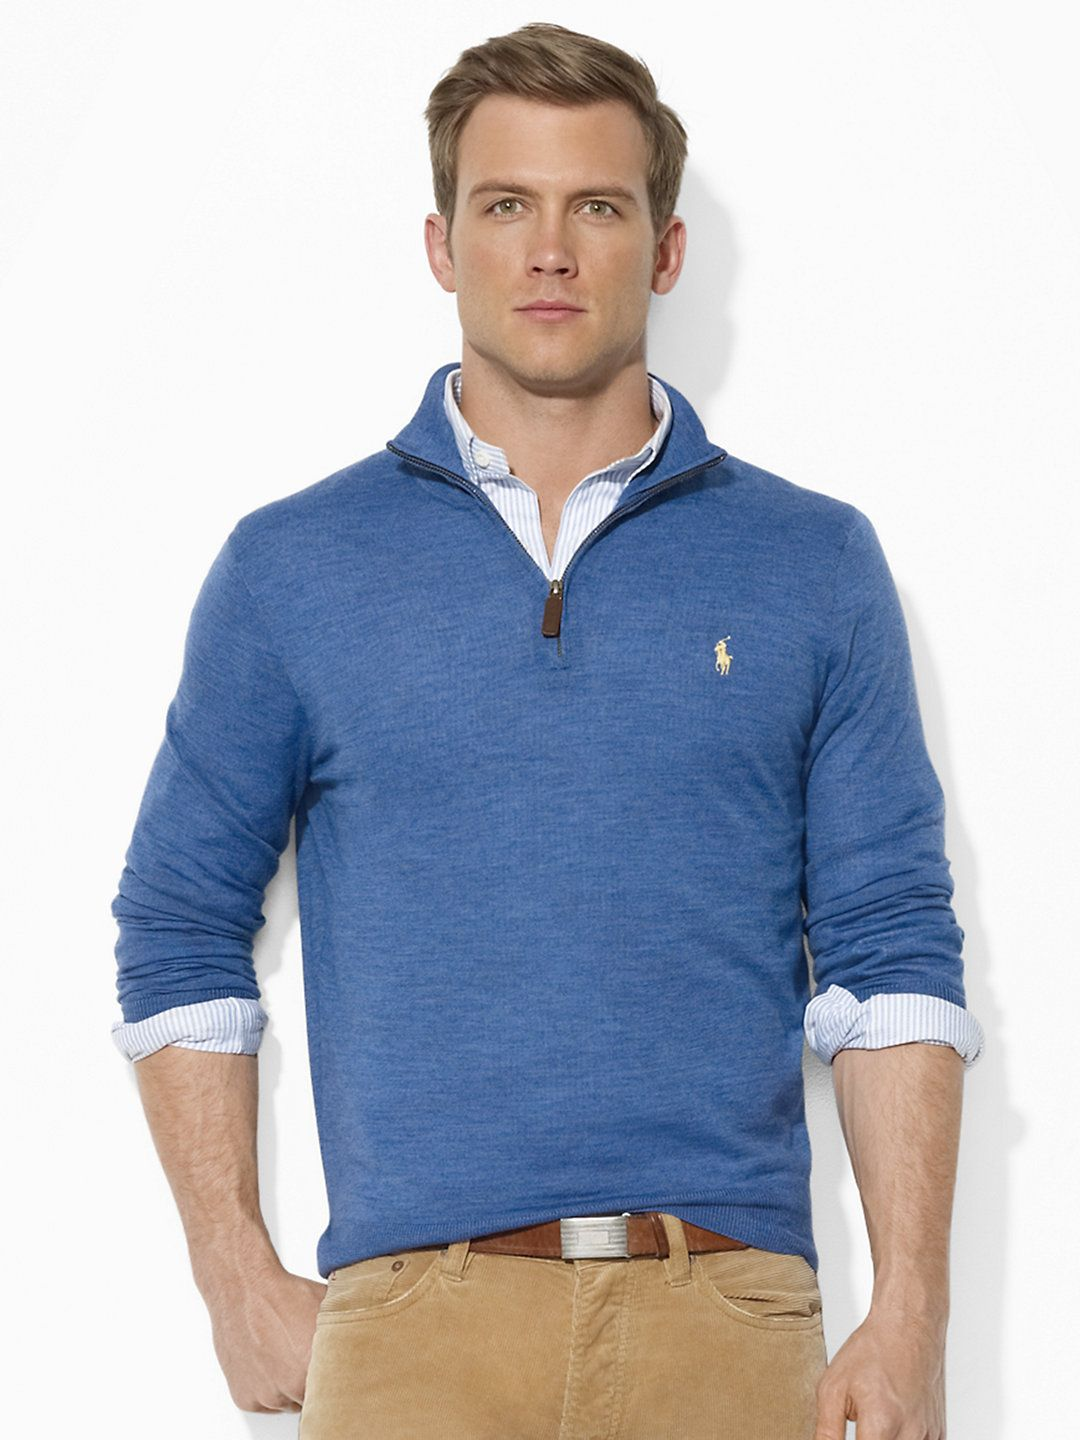 Polo Ralph Lauren Merino Wool Half-Zip Sweater   What my future ... 0369b7357d1e